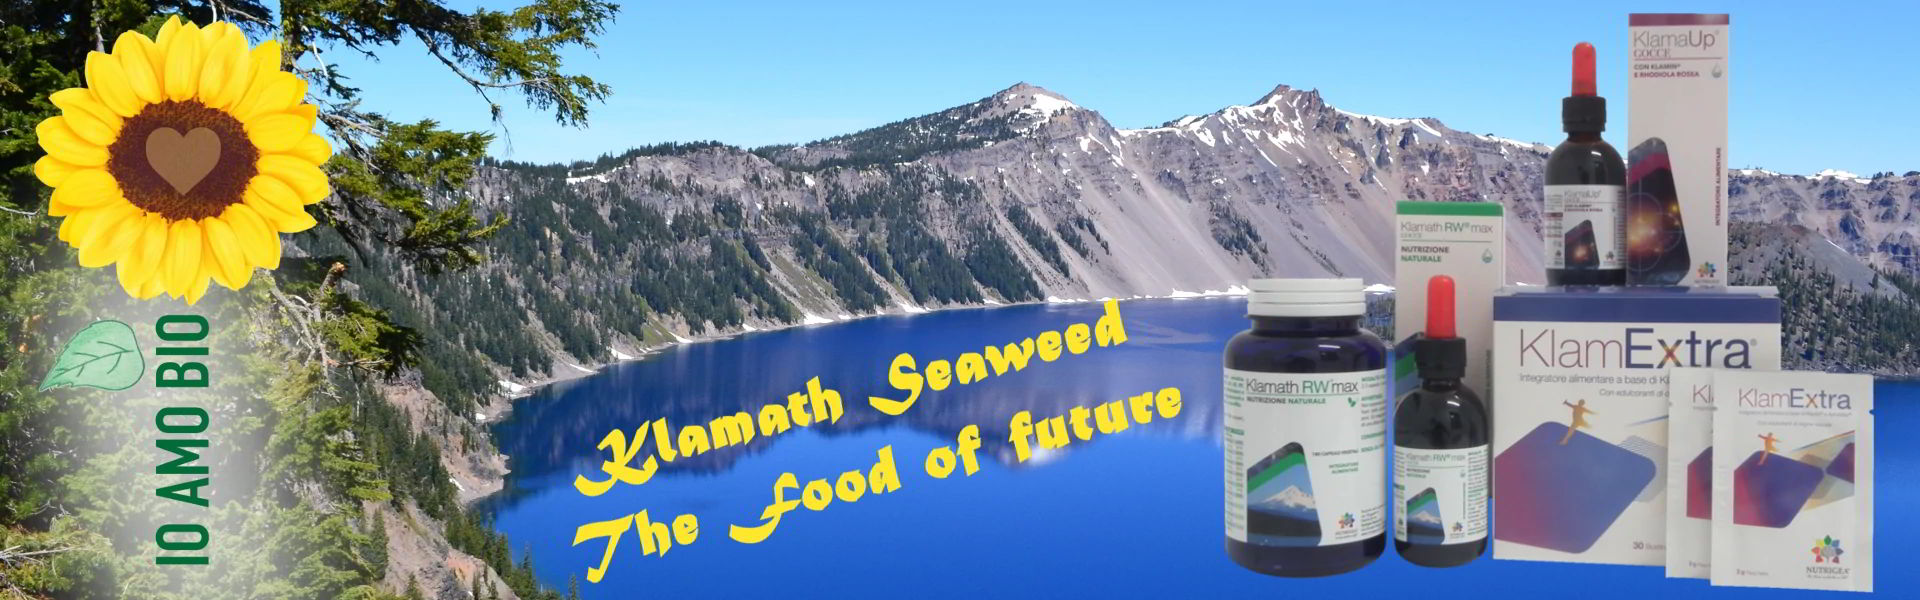 Klamath Seaweed - The food of future